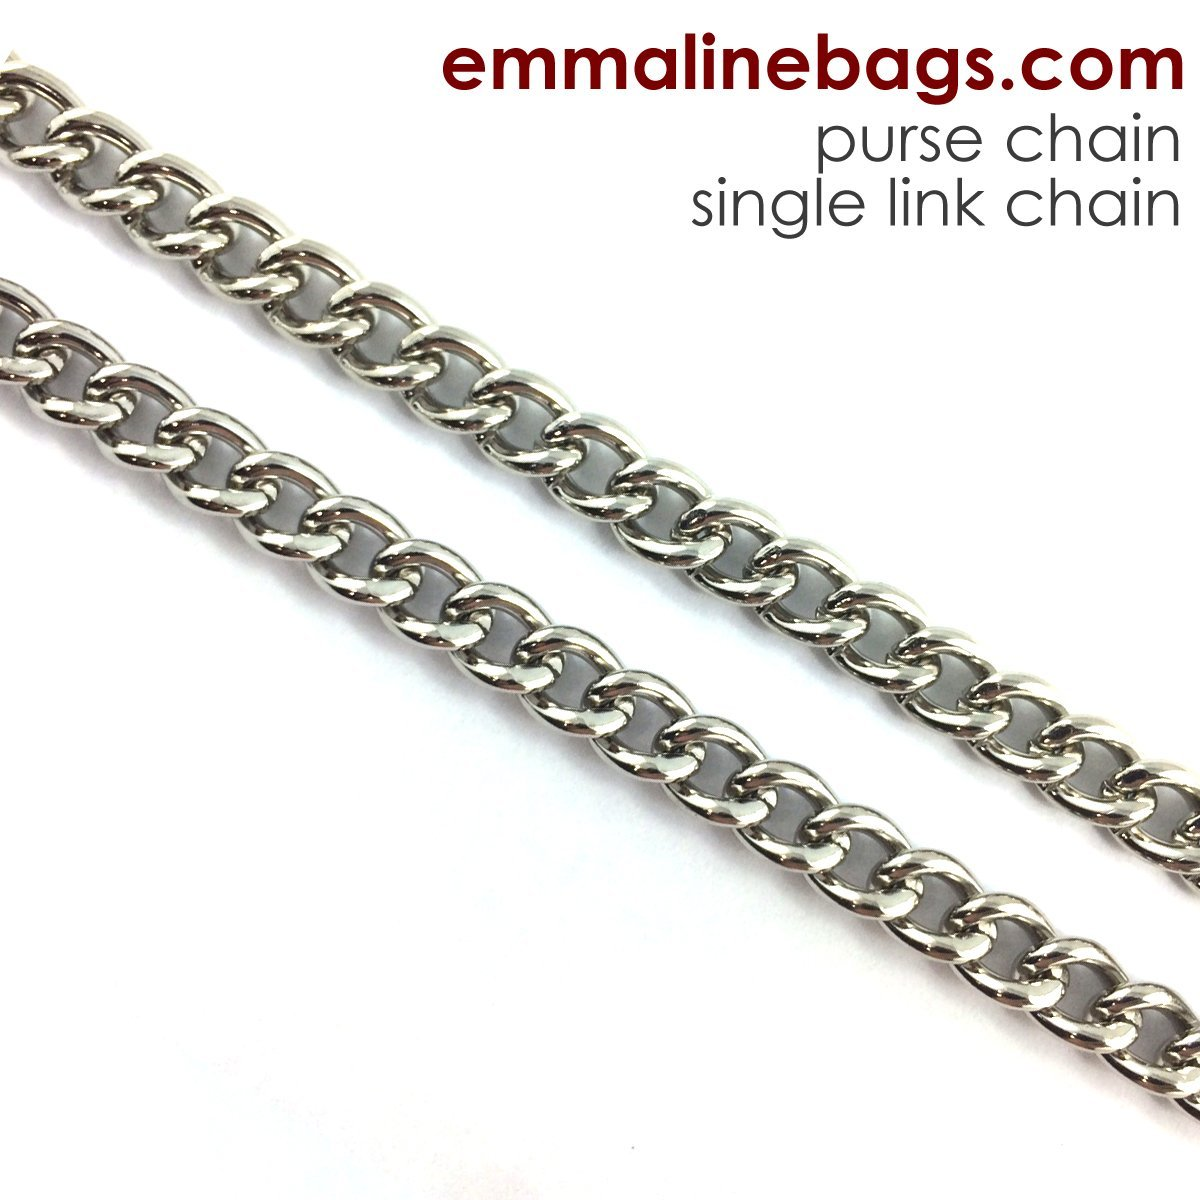 Emmaline Bags - 1 Double Link Chain Strap - 26long Nickel